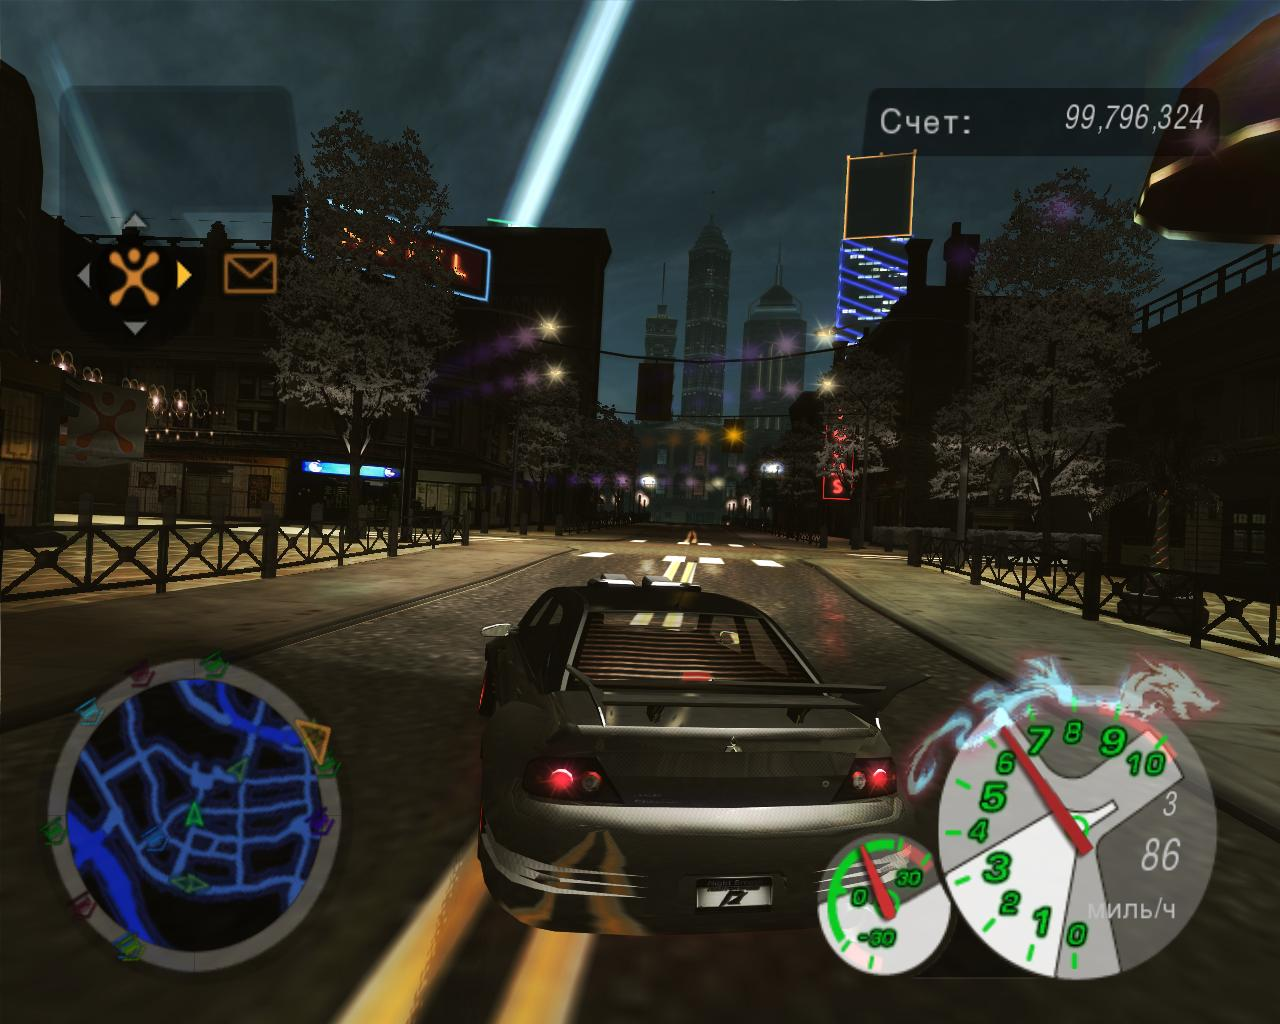 Need for speed: underground / need for speed: underground 2 - dilogy (2003-2004)